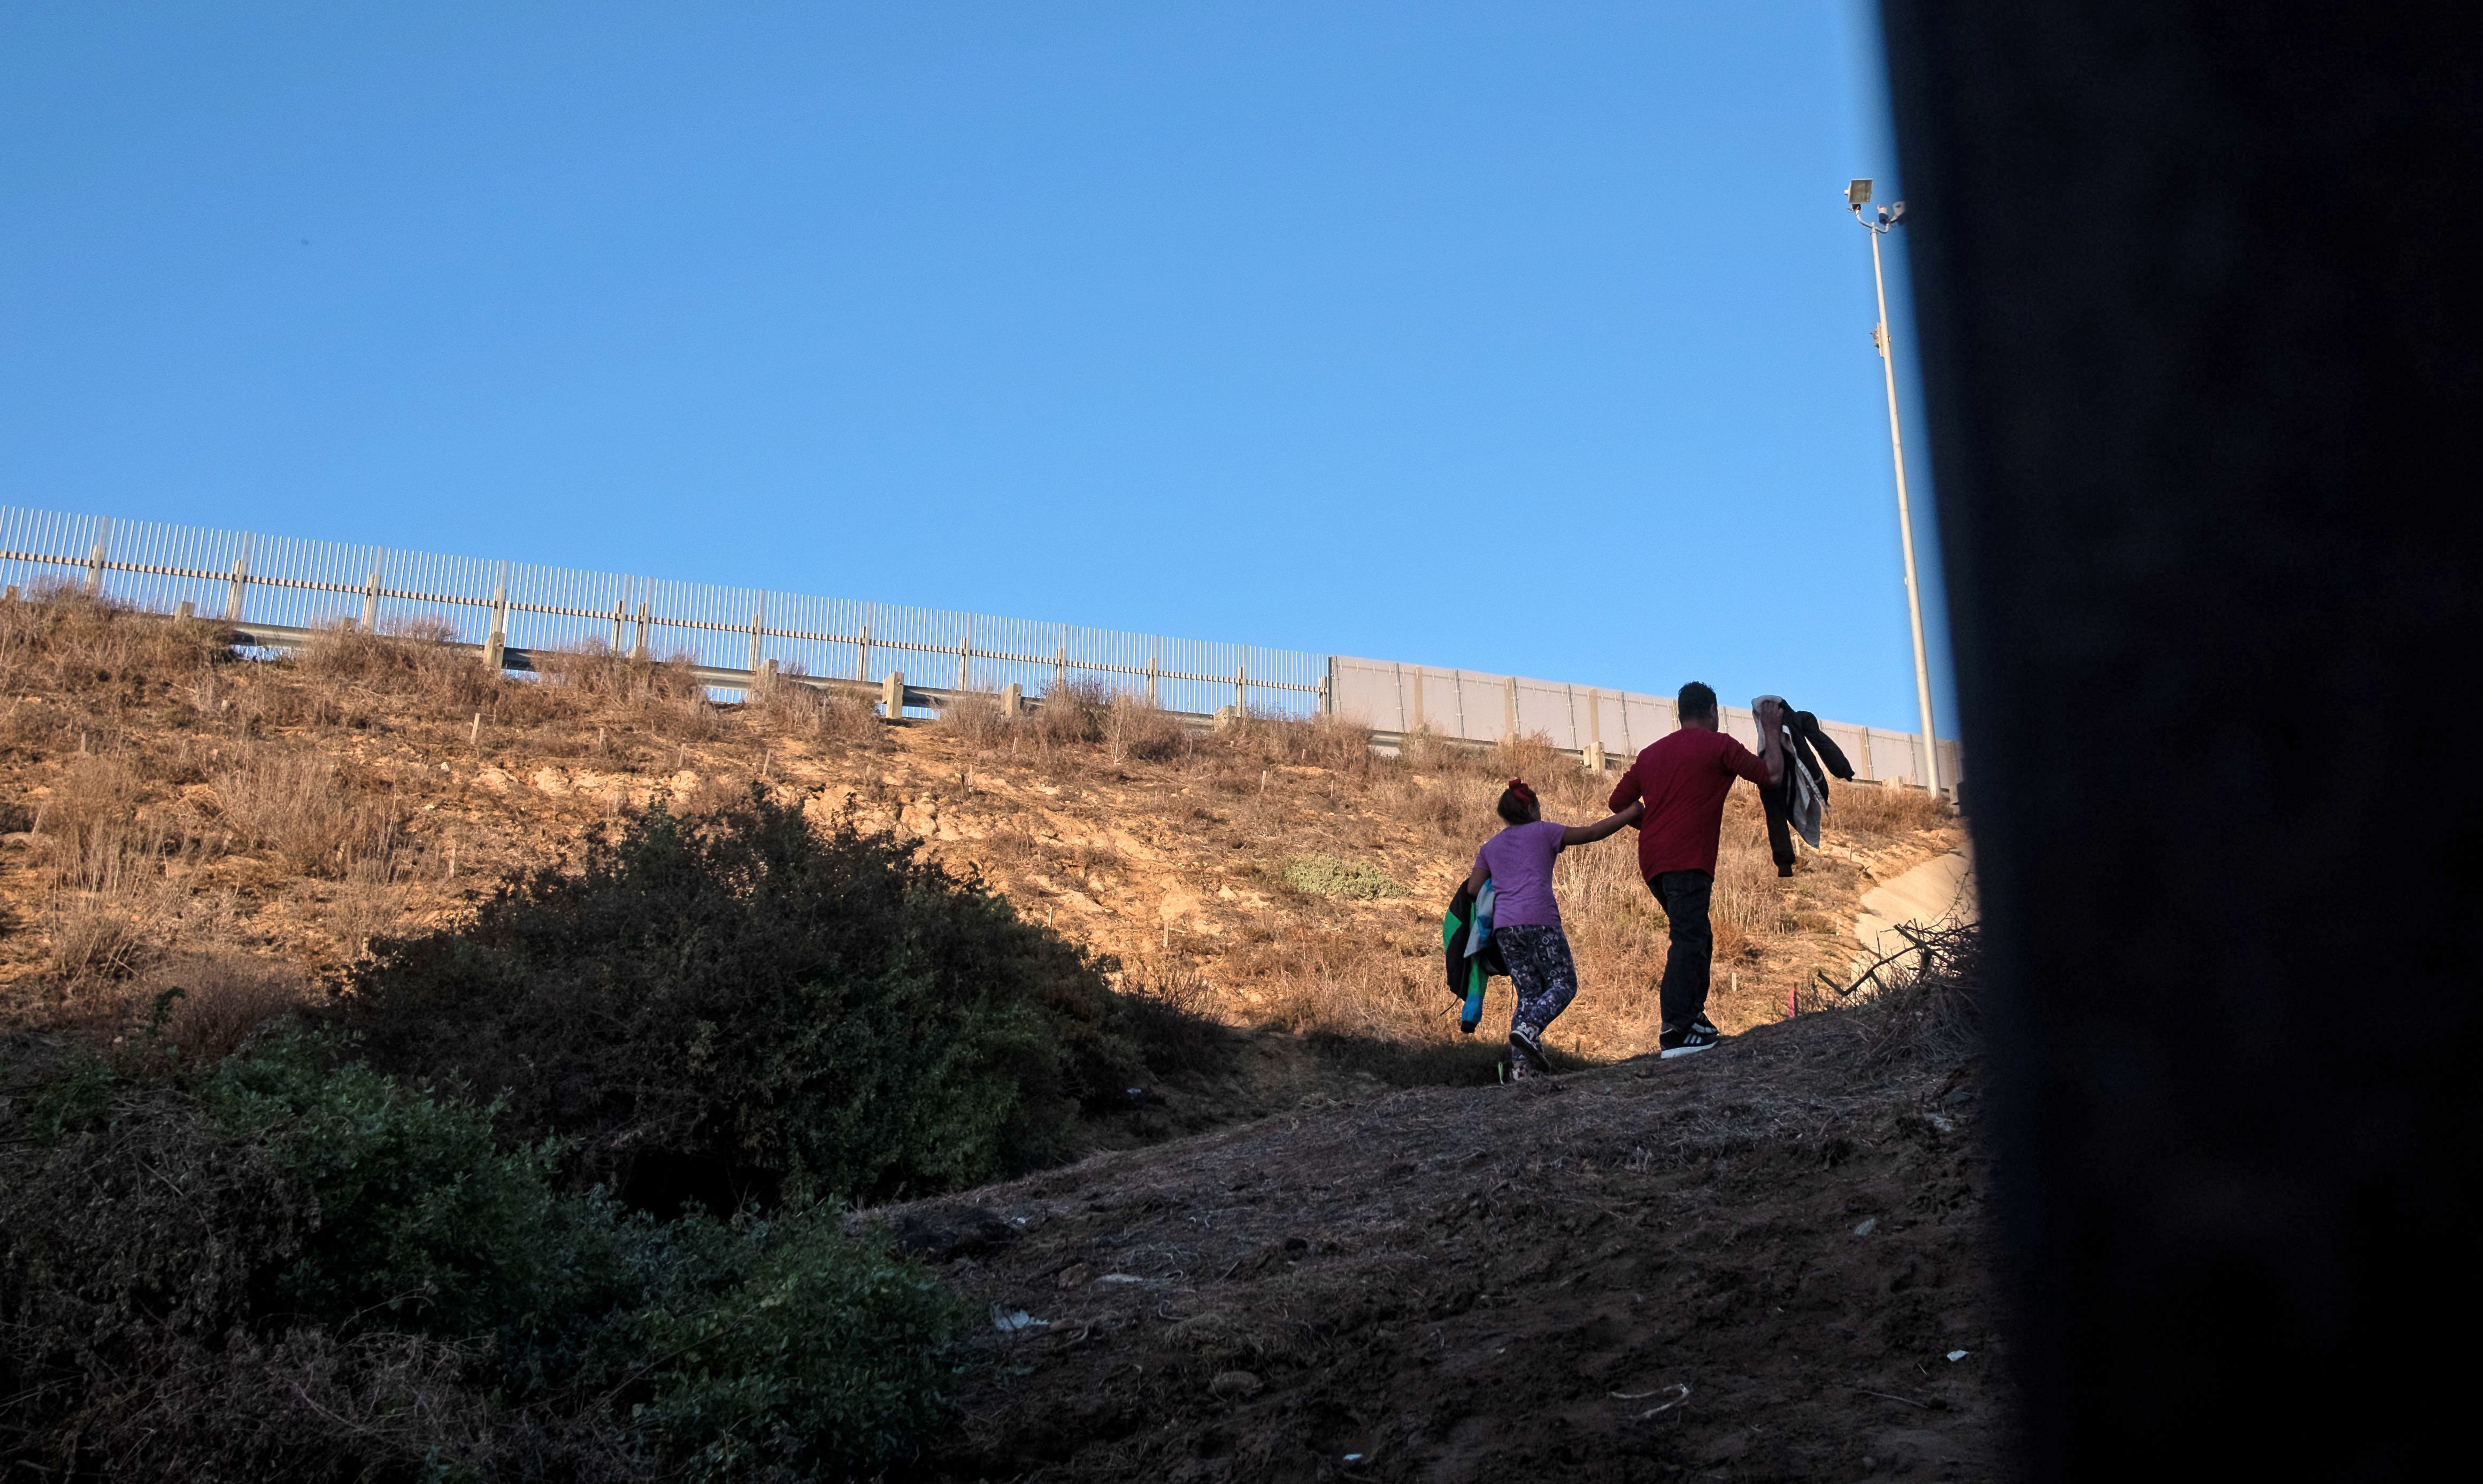 "Honduran Andrea Nicolle, 10, and her father Tony, traveling in a caravan of Central American migrants hoping to get to the United States, walk to surrender to the Border Patrol after crossing through a hole on the ground under the metal barrier separating Mexico and the US to cross from Playas de Tijuana in Mexico into the US, on December 4, 2018. - Mexico's new Foreign Minister Marcelo Ebrard met with US Secretary of State Mike Pompeo for a ""friendly"" meeting amid tensions over the migrant crisis at the border. Both countries are grappling with how to handle the thousands of Central American migrants who are camped at the common border -- in the short and long terms. (Photo by GUILLERMO ARIAS/AFP/Getty Images)"